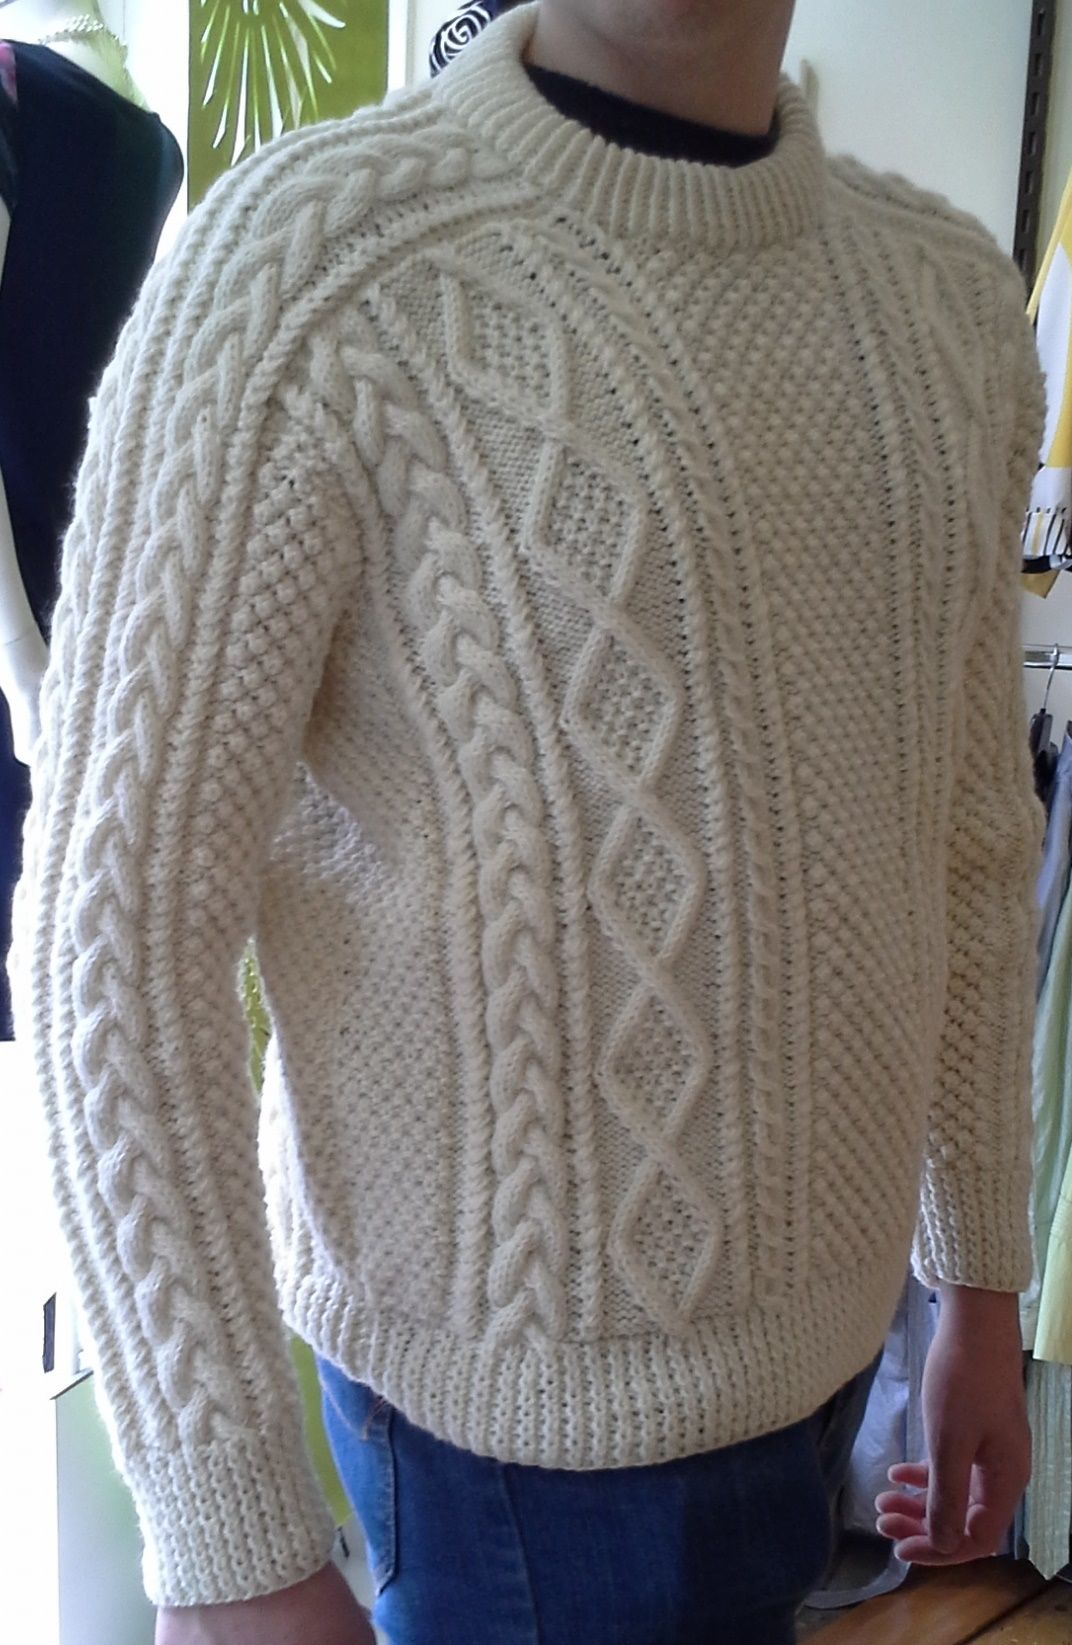 Superb quality handknitted irish fisherman sweater with saddle superb quality handknitted irish fisherman sweater with saddle shoulder donegal using pure new wool and traditional aran patterns and stitches bankloansurffo Gallery